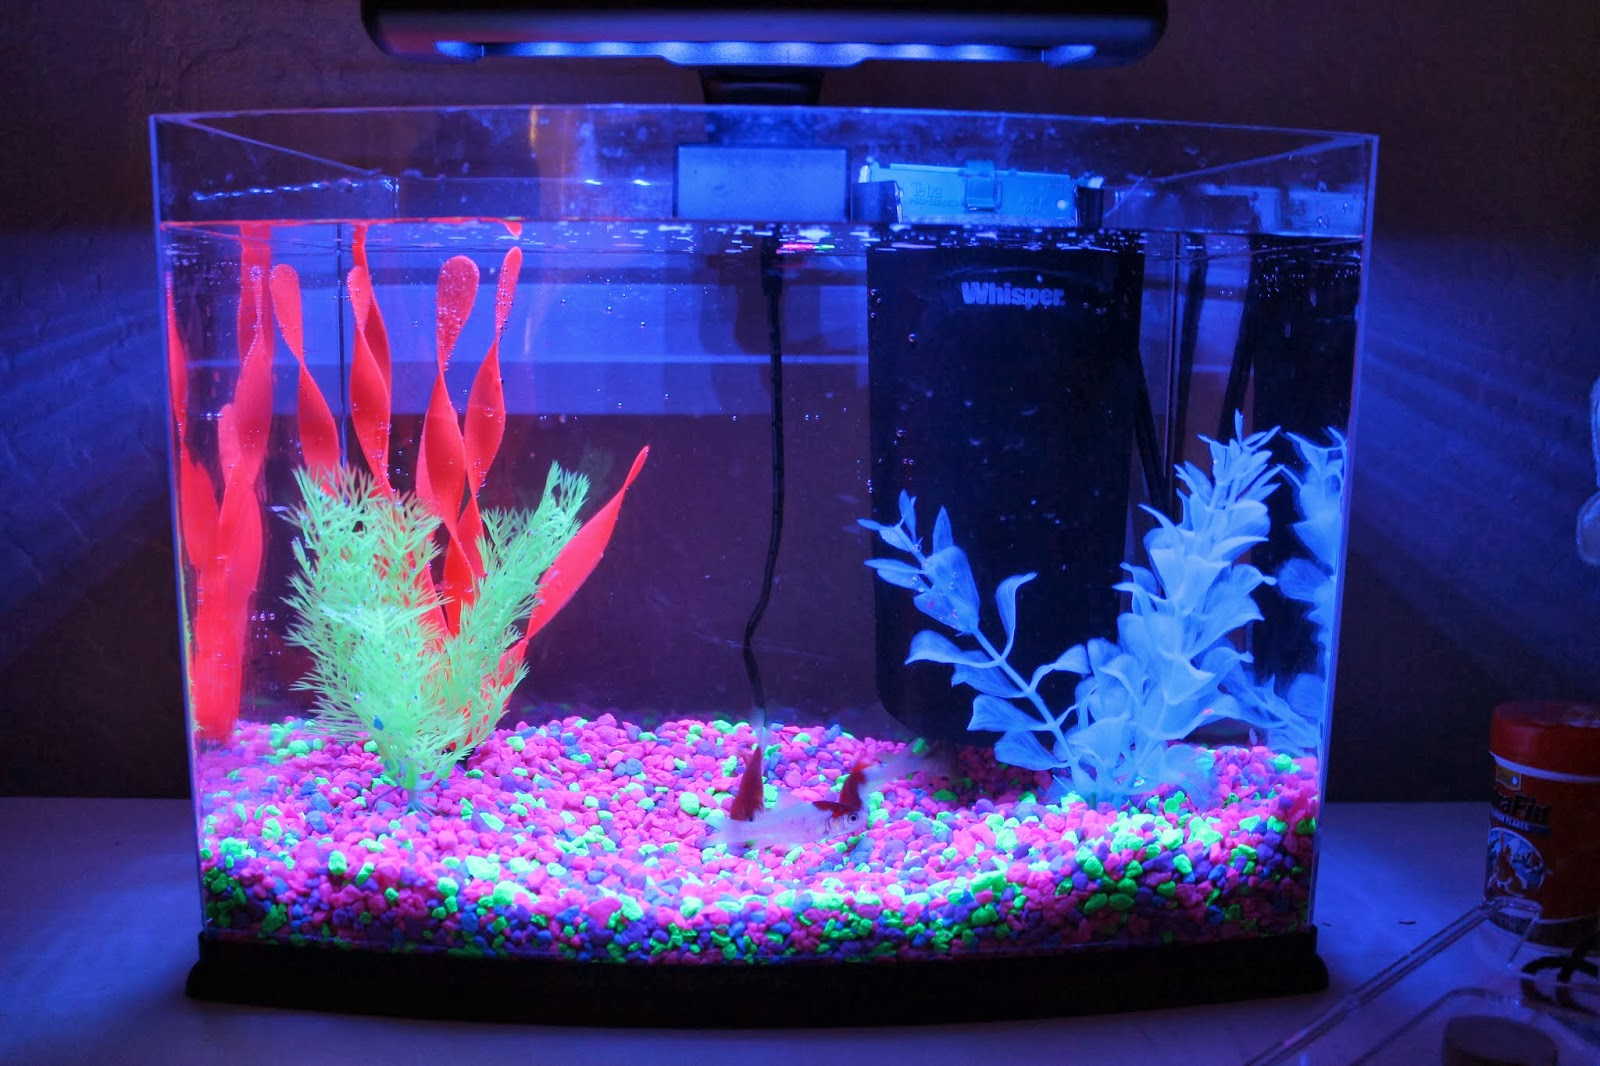 Fish aquarium is good in home - Glow In The Dark Fish Tank Xander Ideas Pinterest Tanks Fish Tanks And Fish